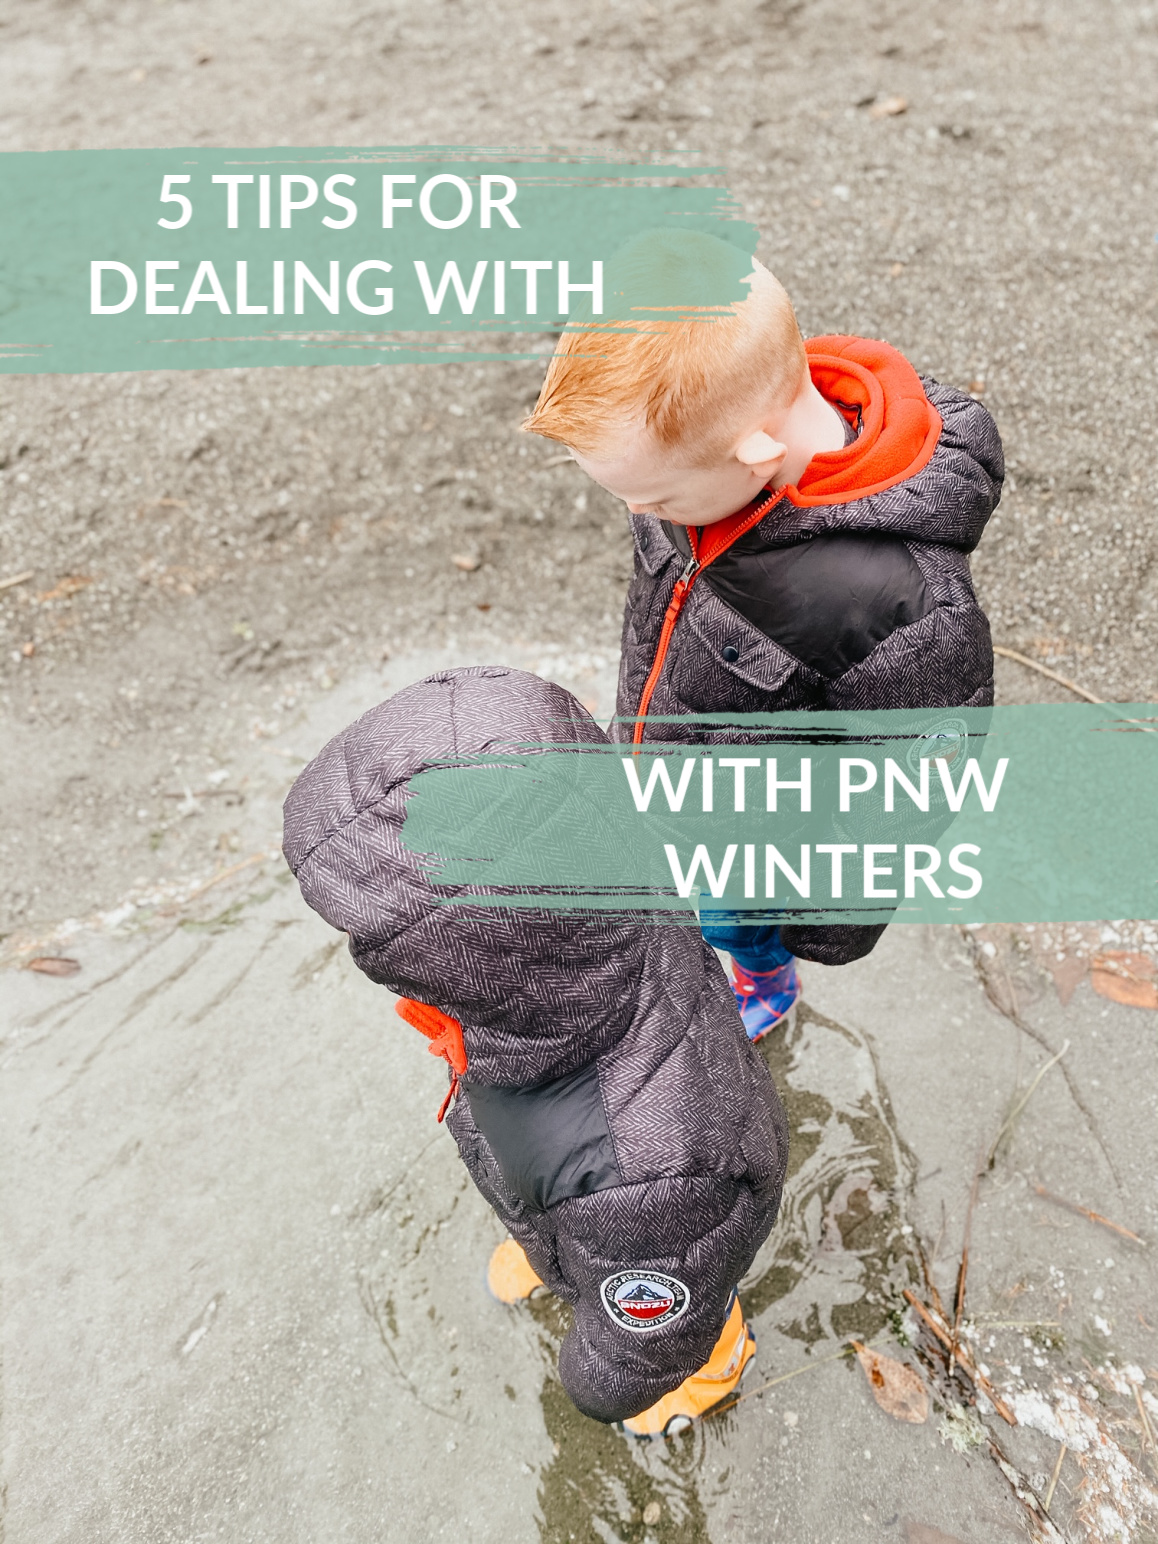 5 tips for dealing with pnw winters